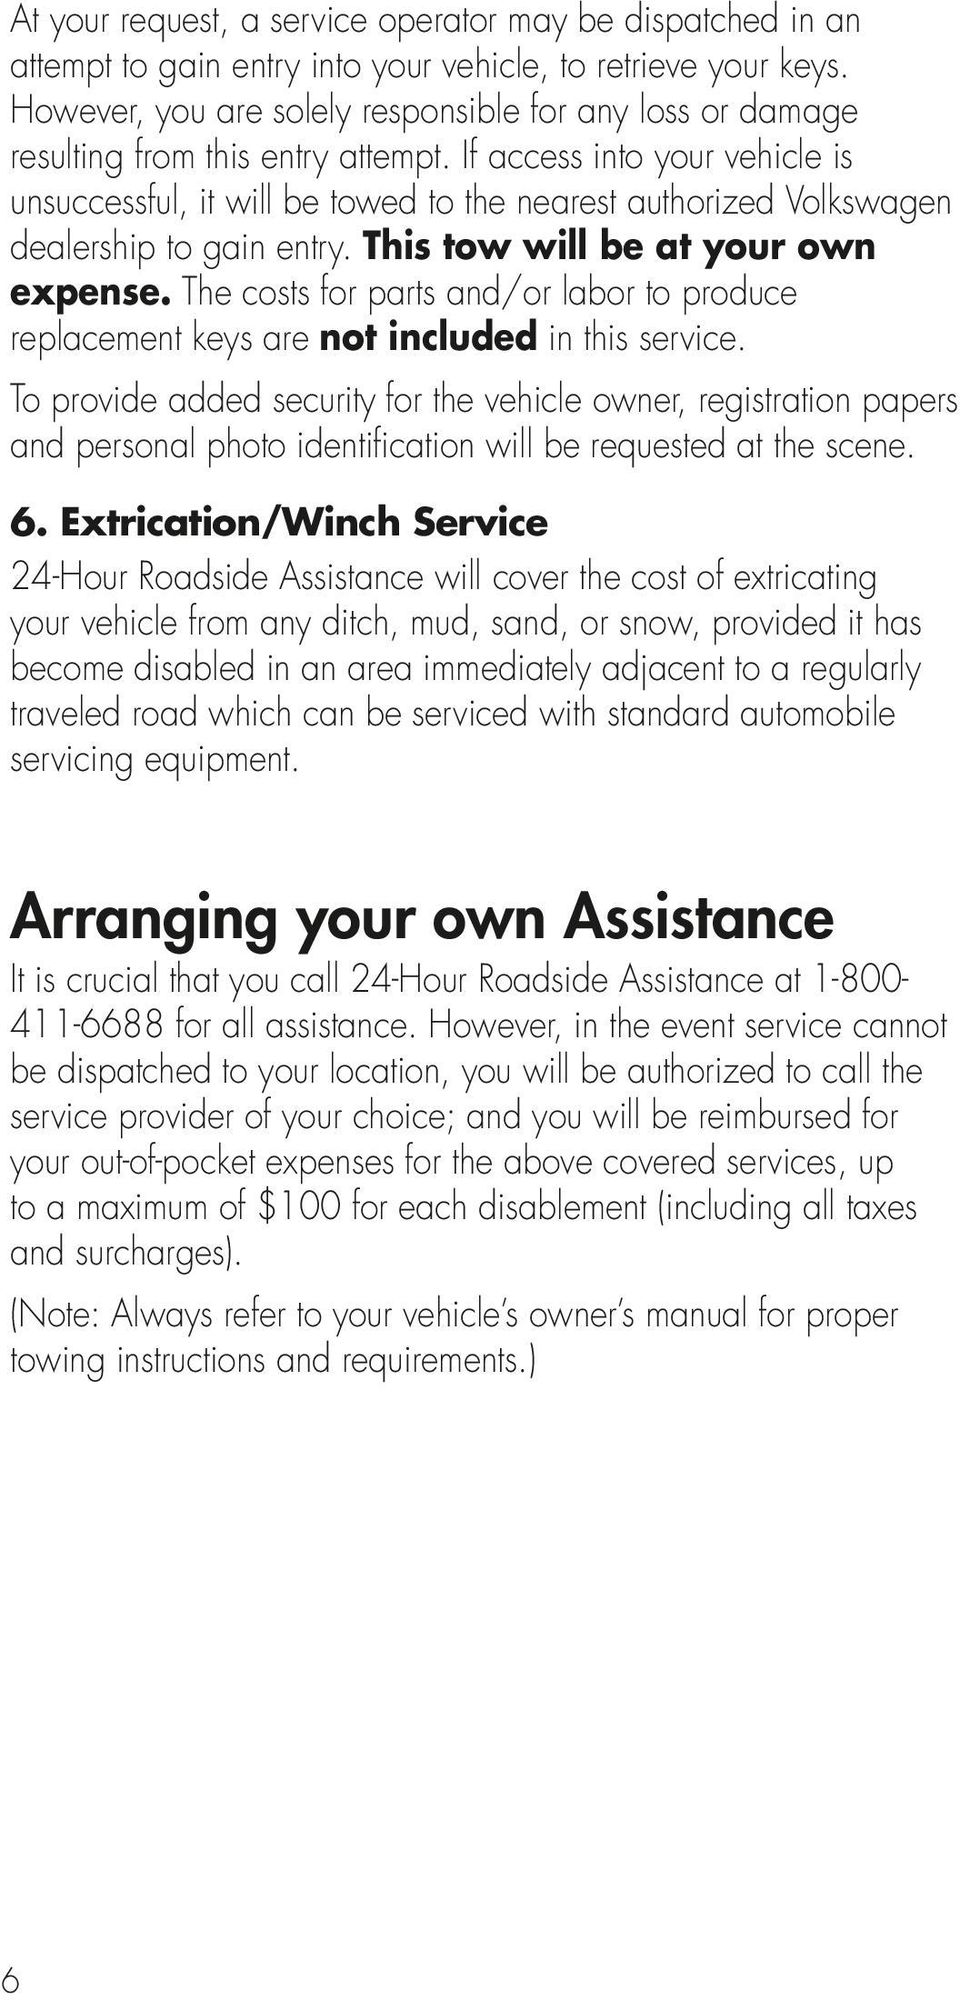 If access into your vehicle is unsuccessful, it will be towed to the nearest authorized Volkswagen dealership to gain entry. This tow will be at your own expense.